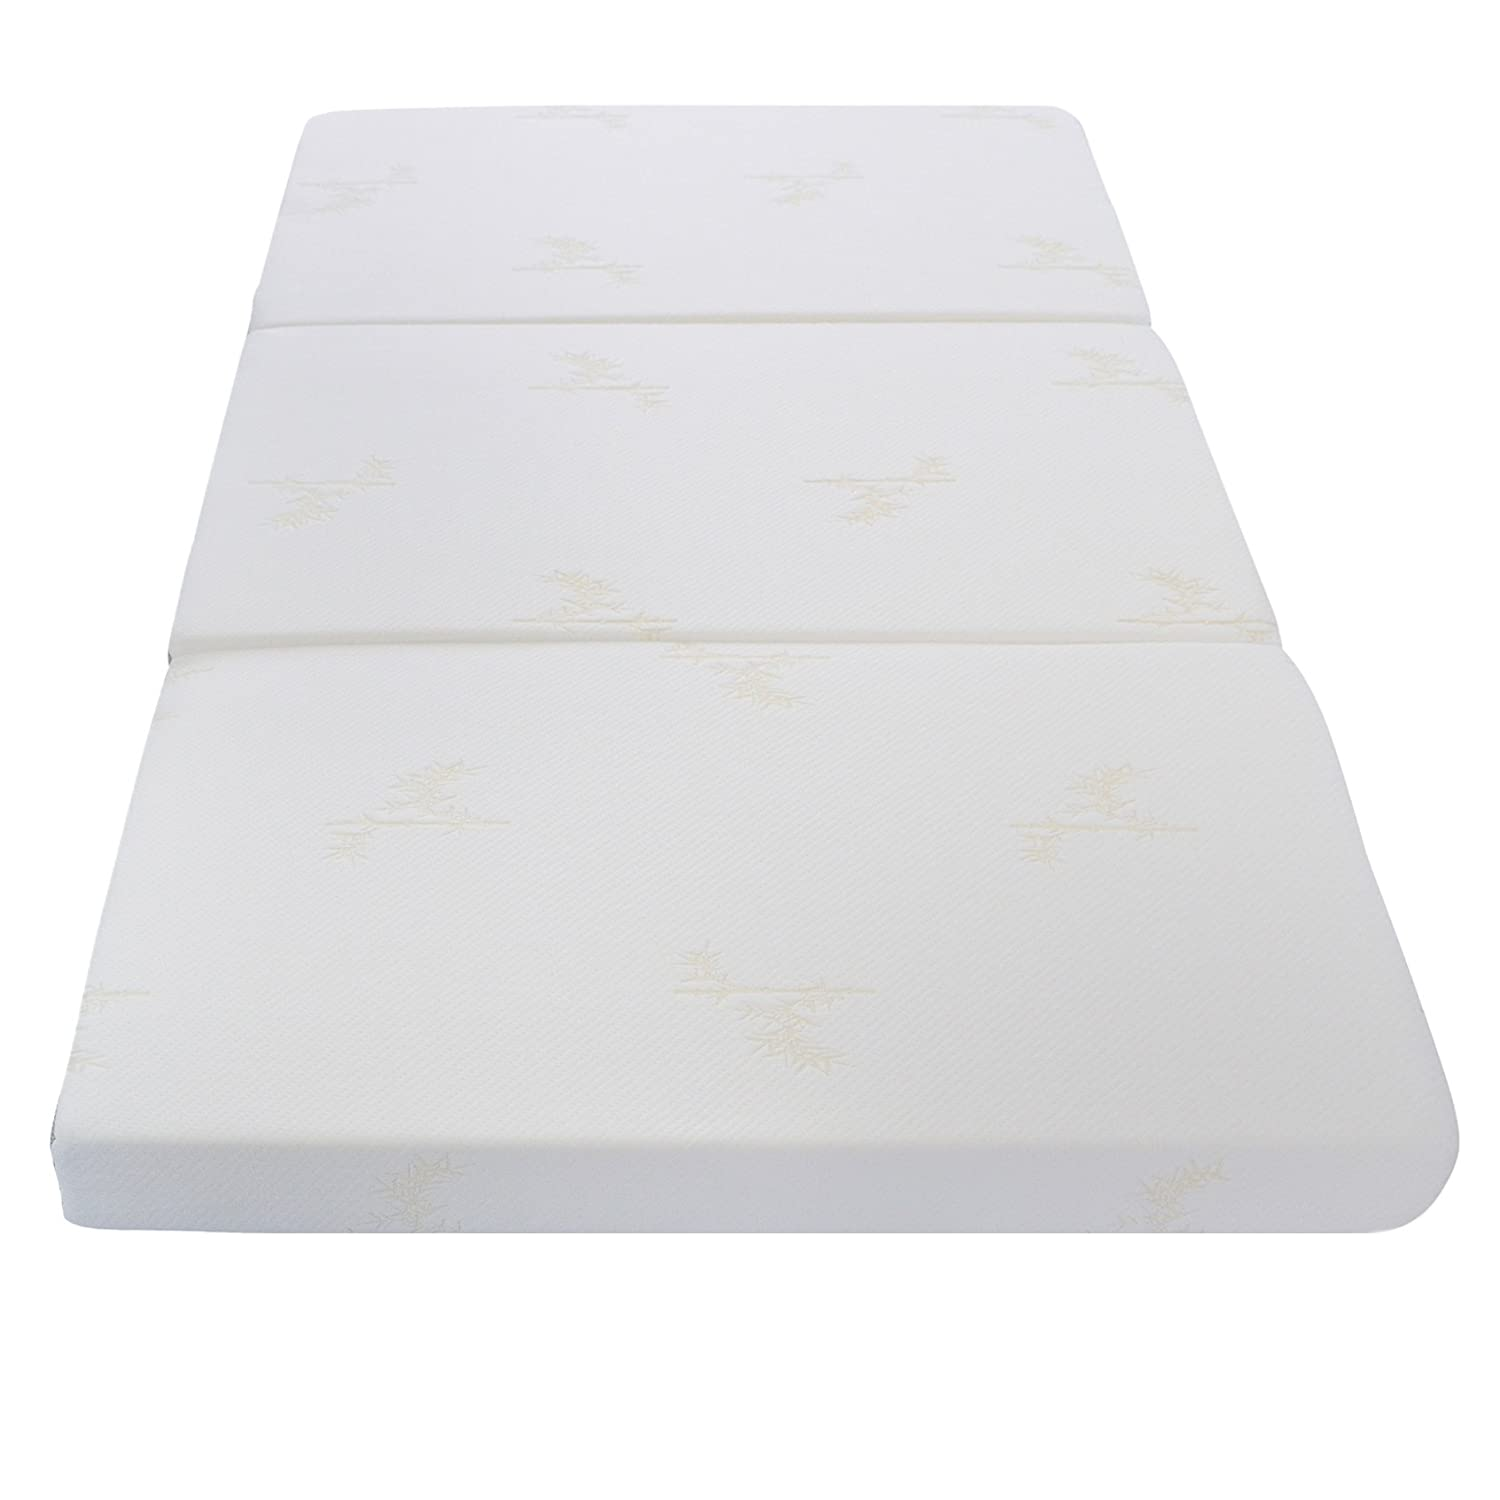 Milliard Tri Folding Mattress Full, with Ultra Soft Removable Cover and  Non-Slip Bottom